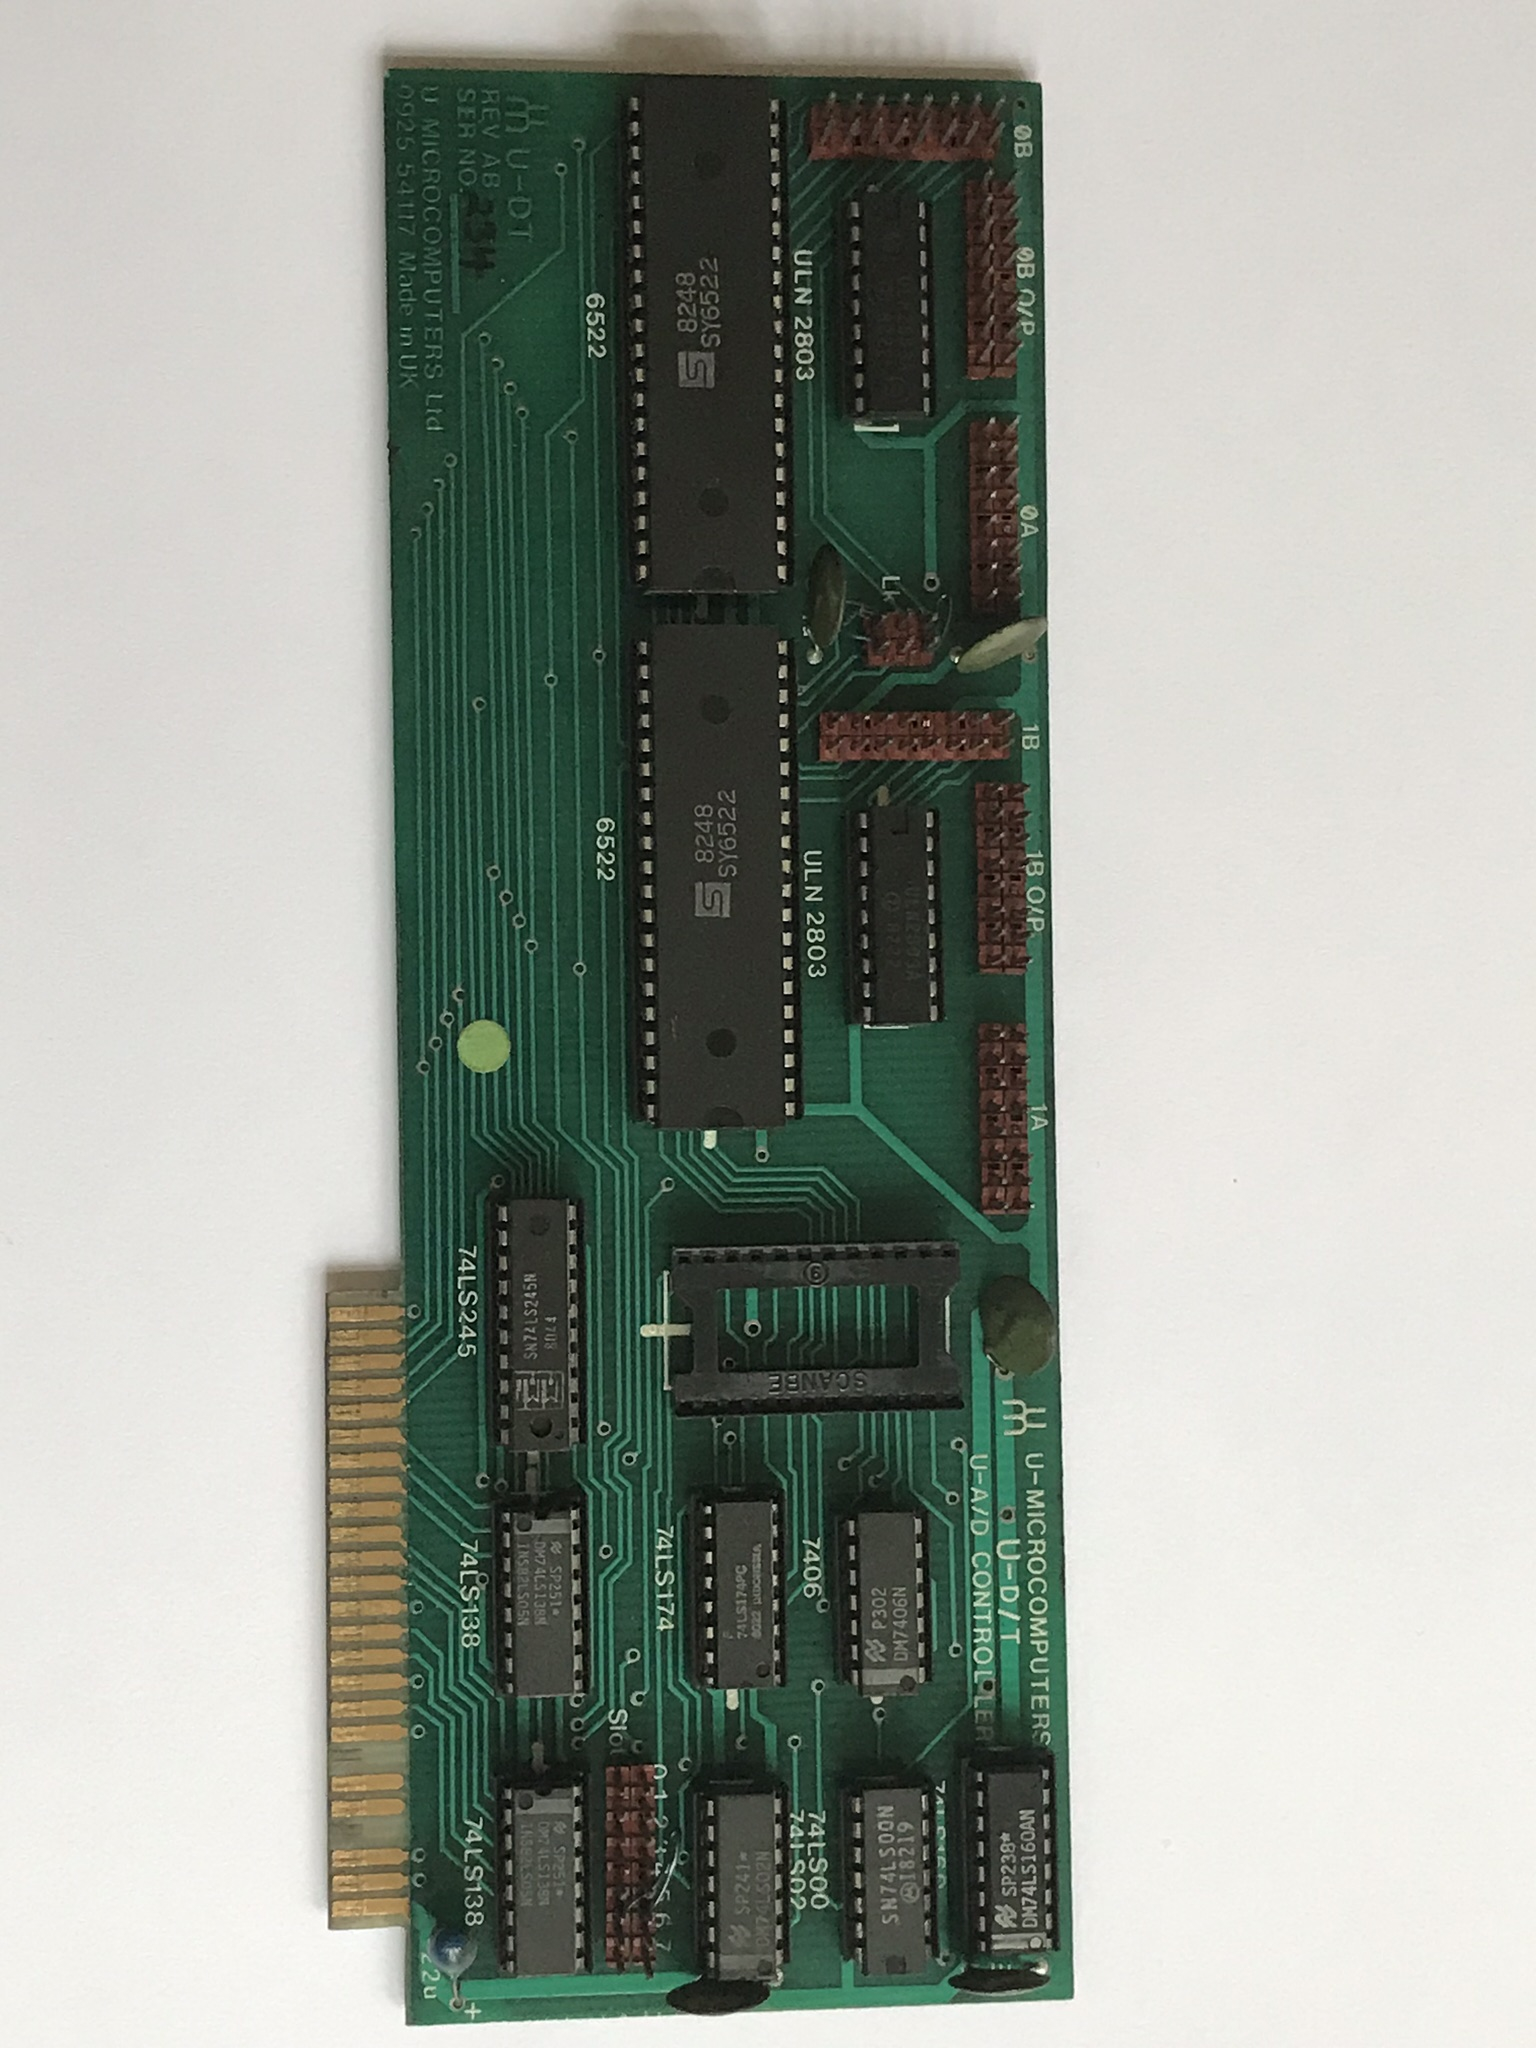 U-DT Apple II card